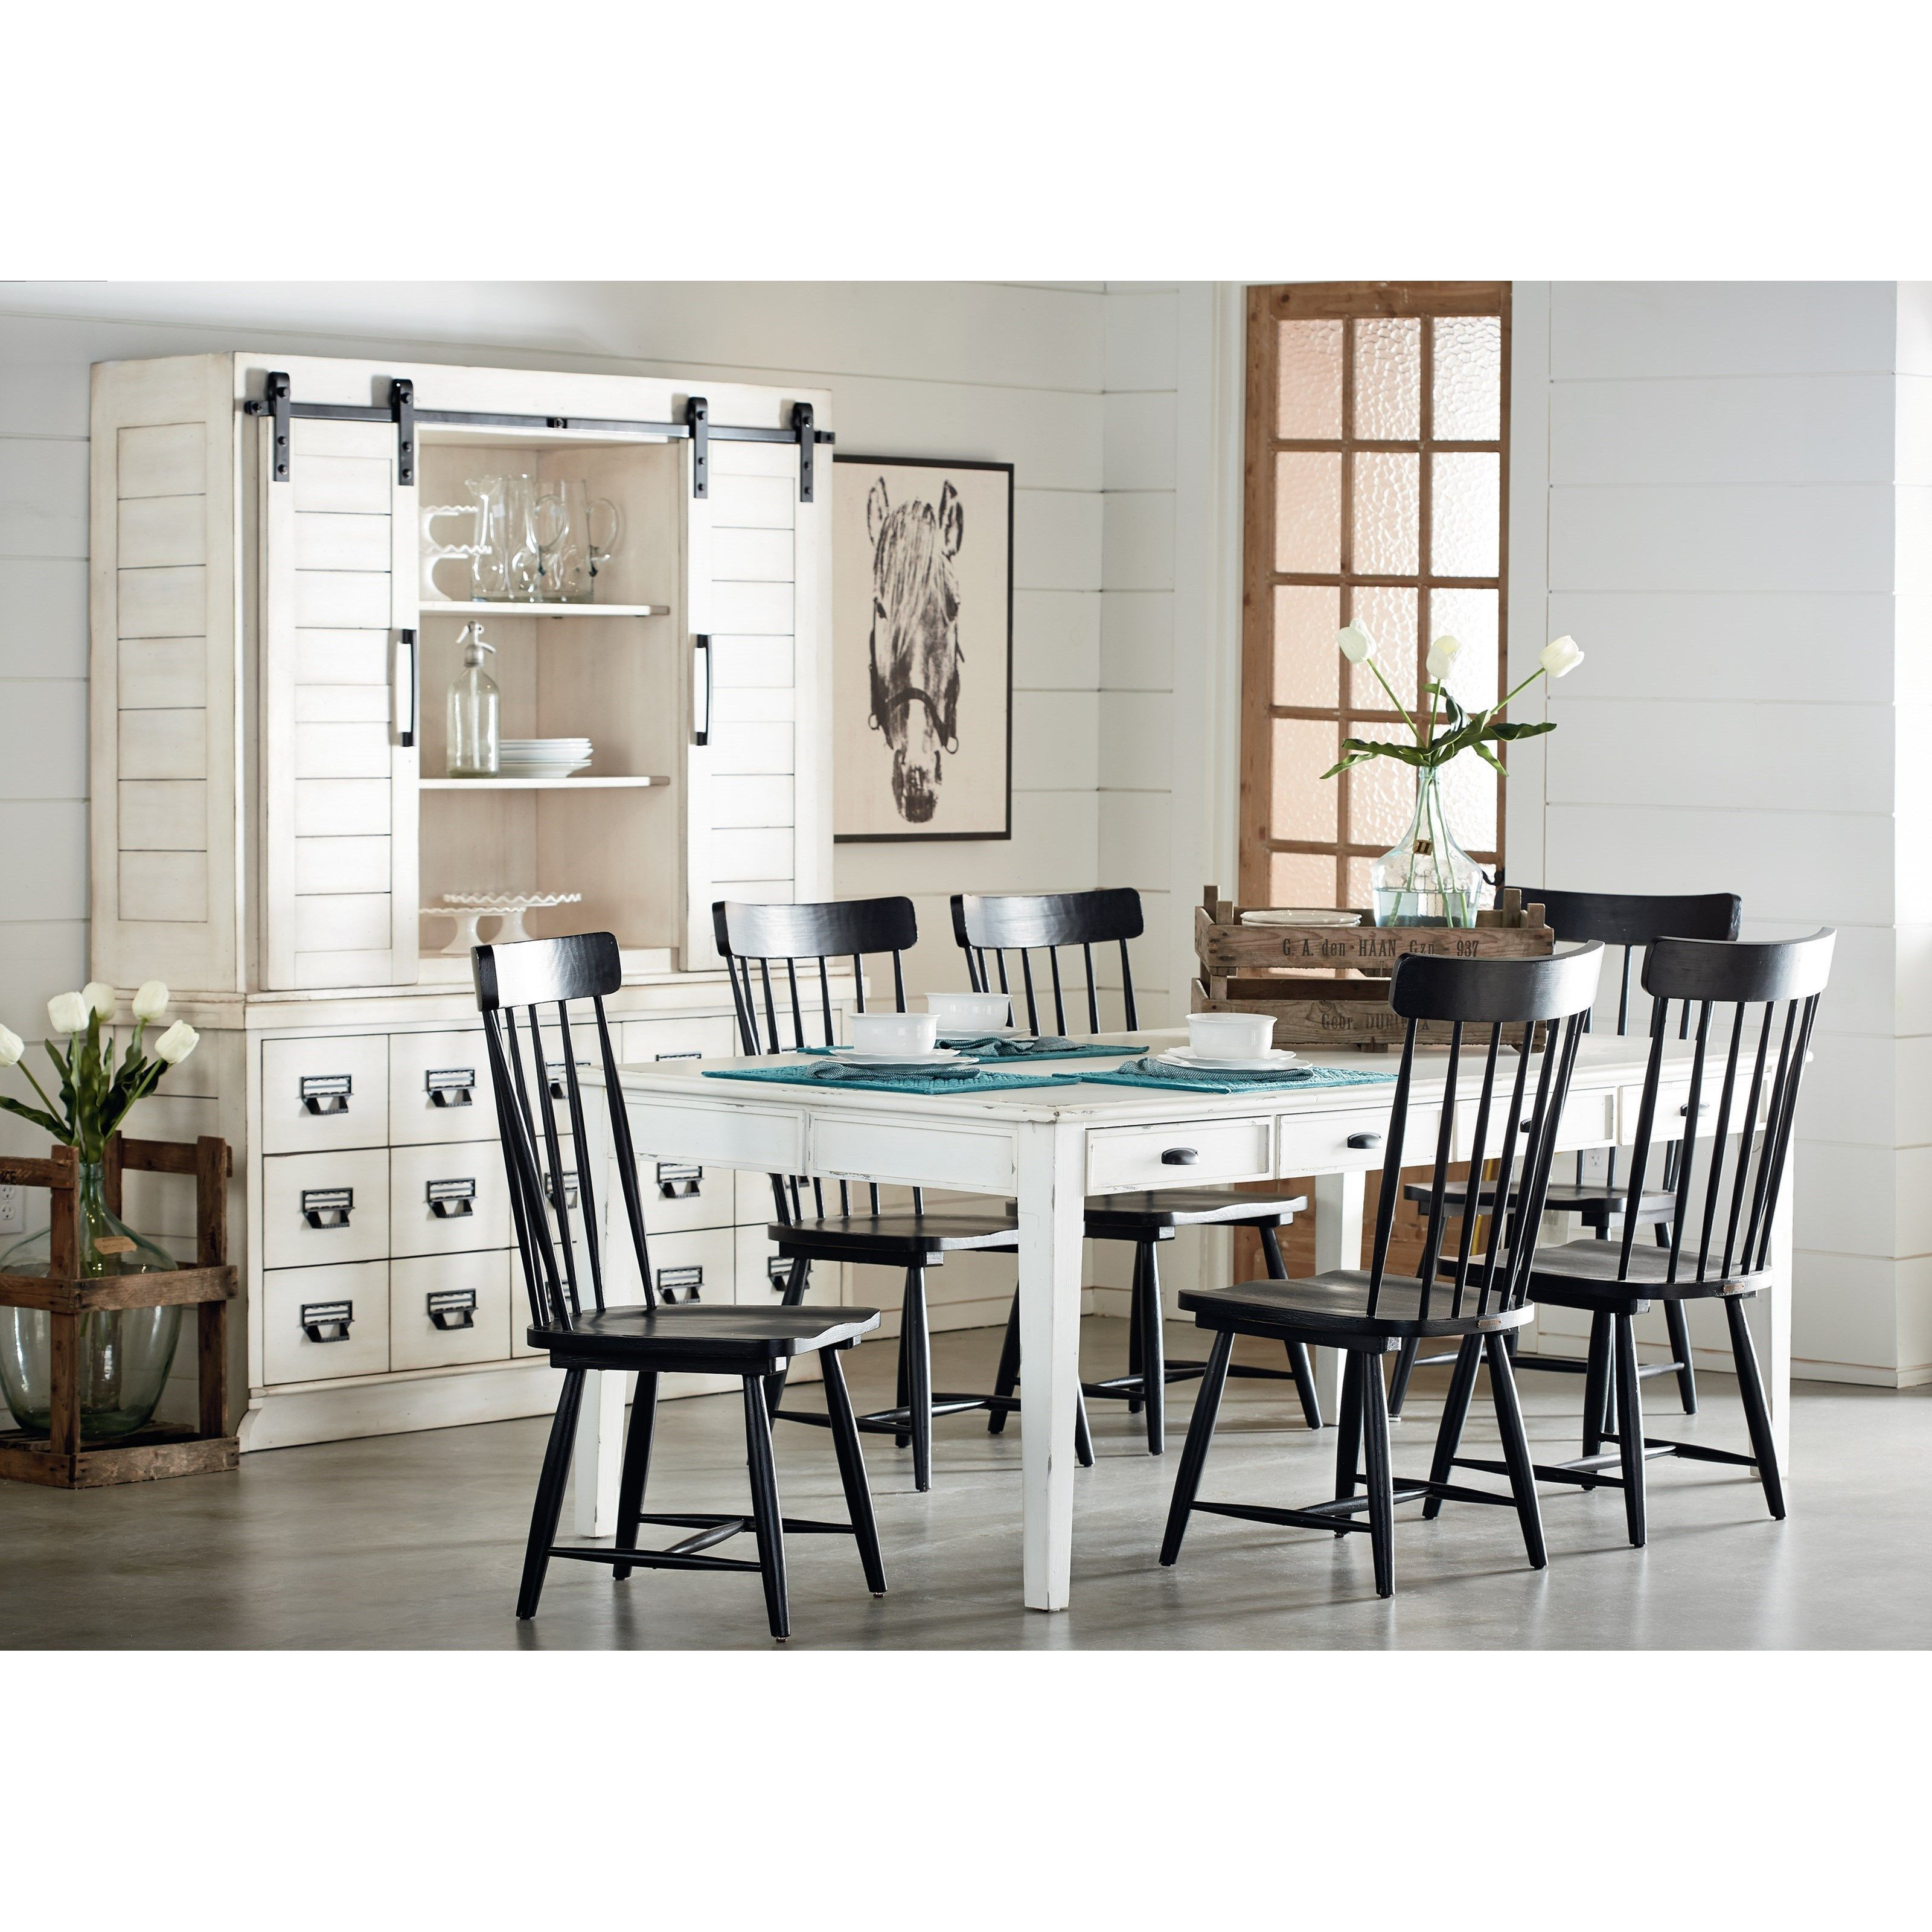 Farmhouse Kitchen Dining Group by Magnolia Home by Joanna Gaines